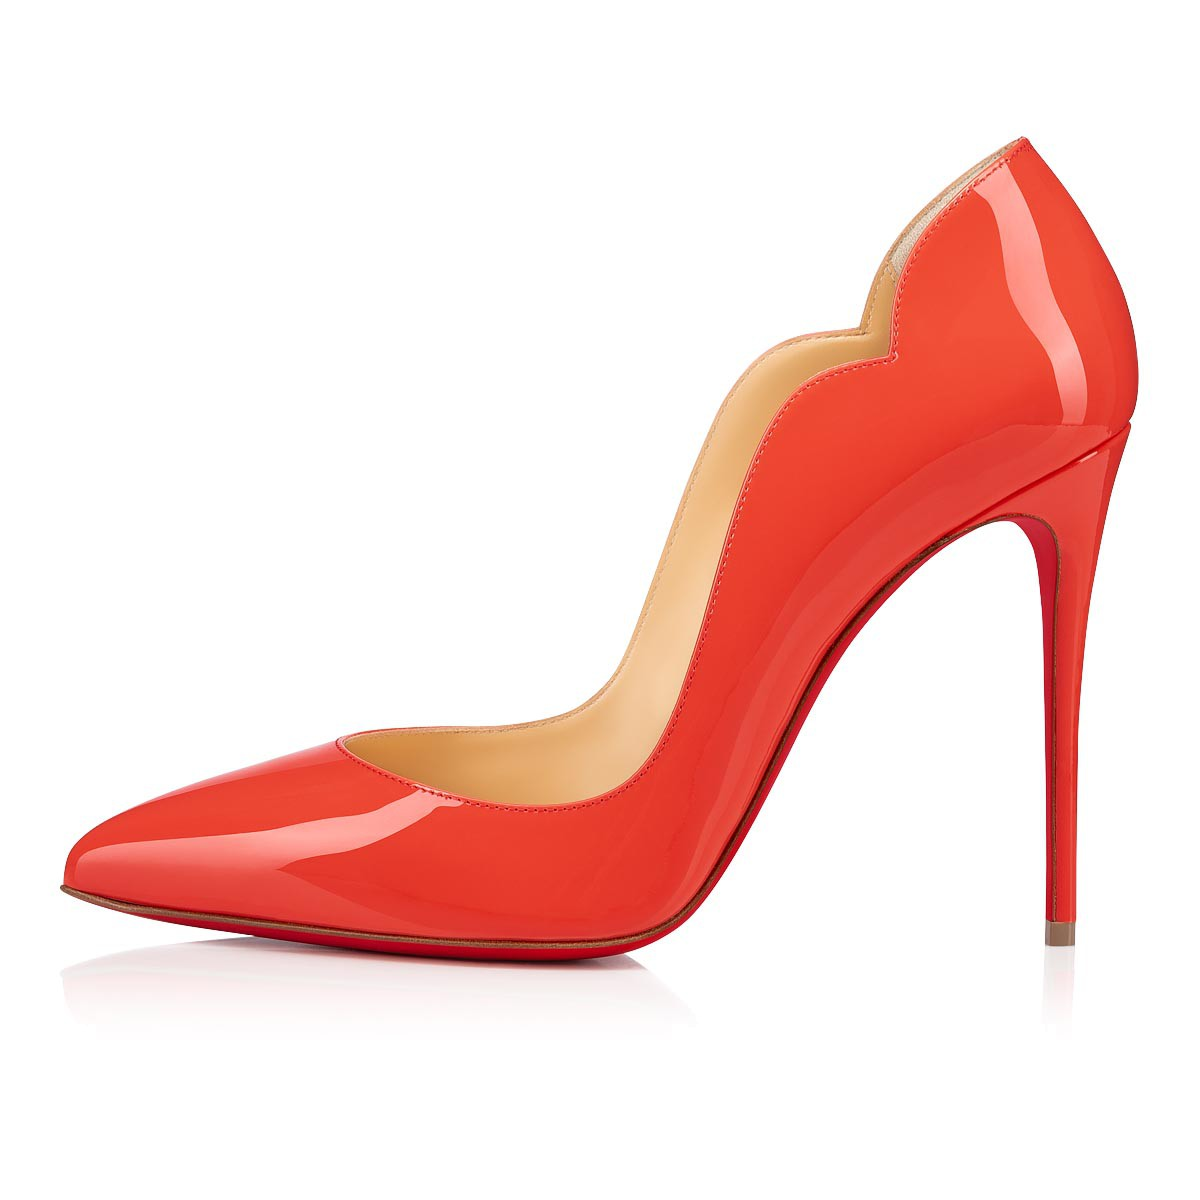 Souliers - Hot Chick - Christian Louboutin